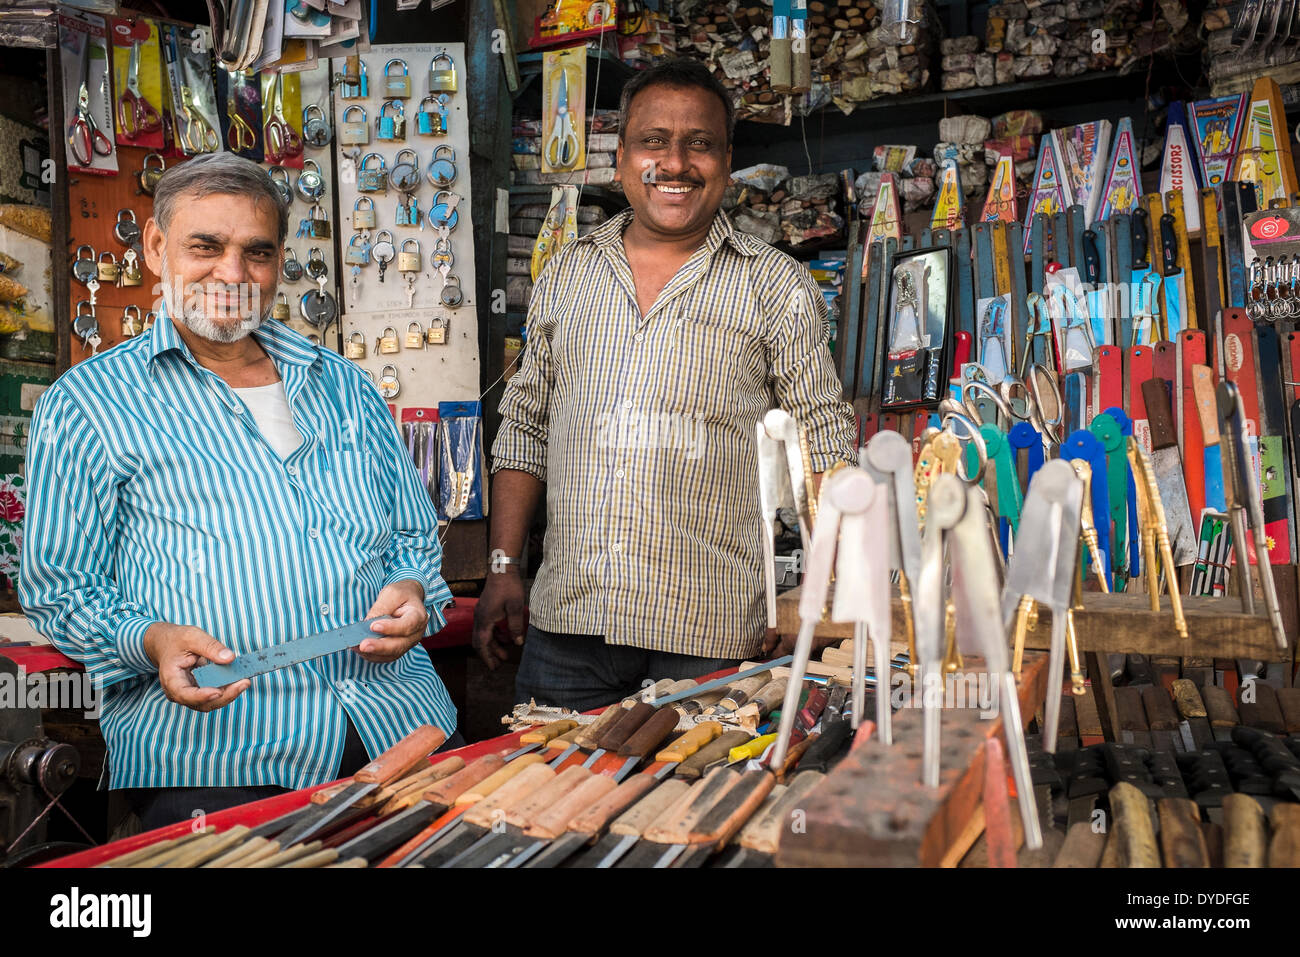 Two men in their shop specialising in metallic items including locks and knives and nutcrackers. - Stock Image